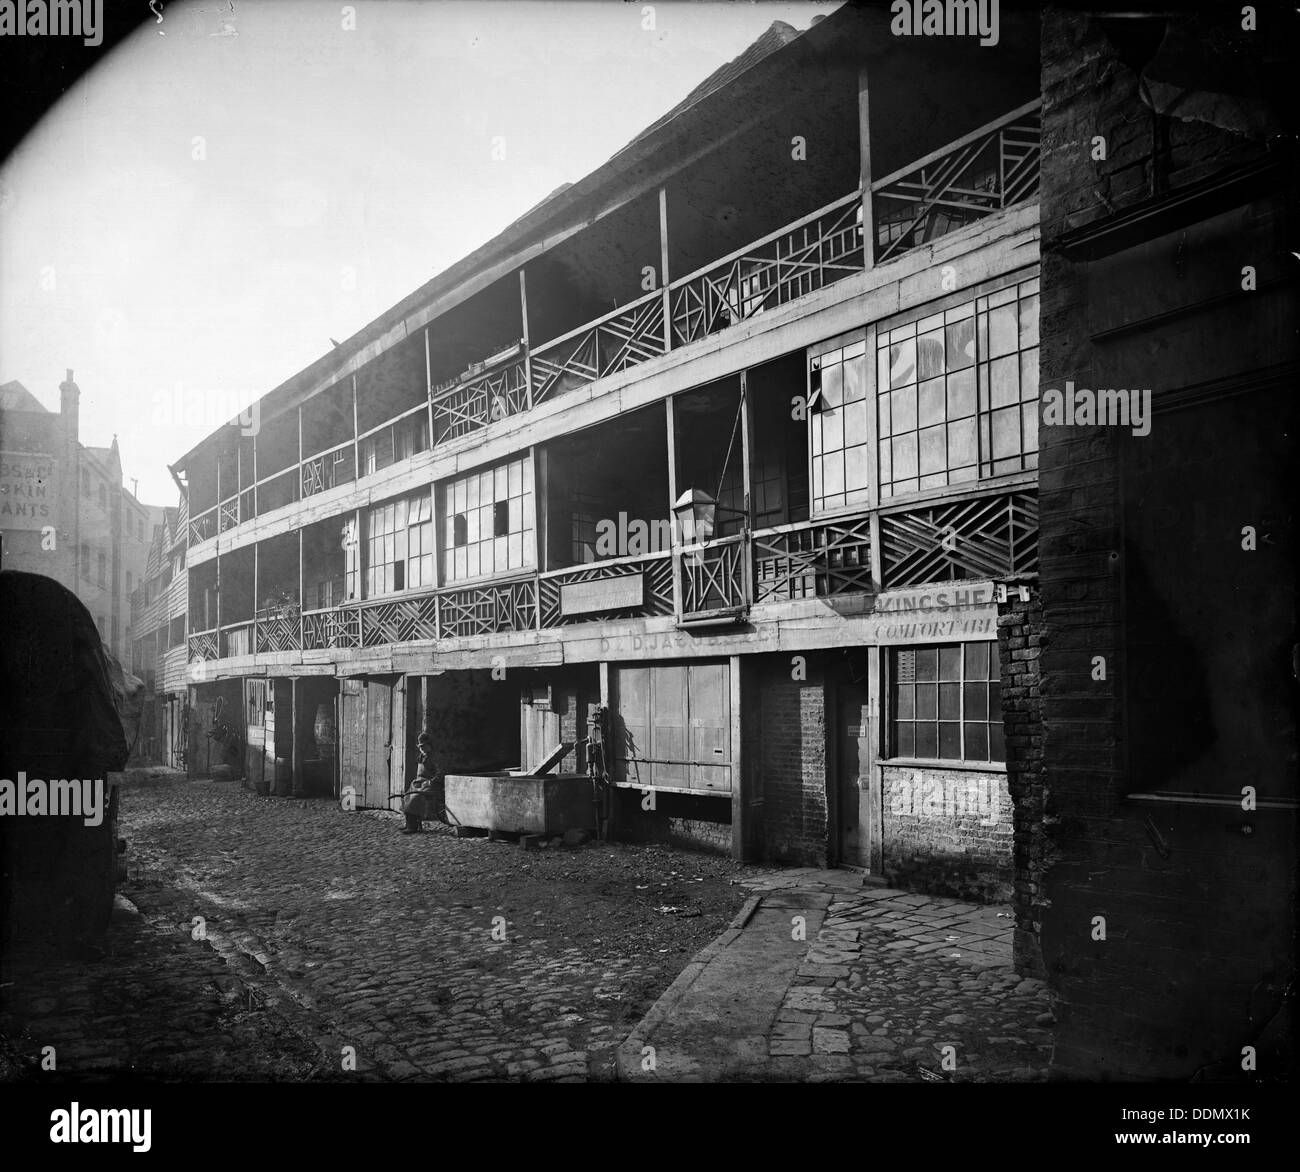 Exterior view of the King's Head, Borough High Street, Southwark, London, c1870. - Stock Image